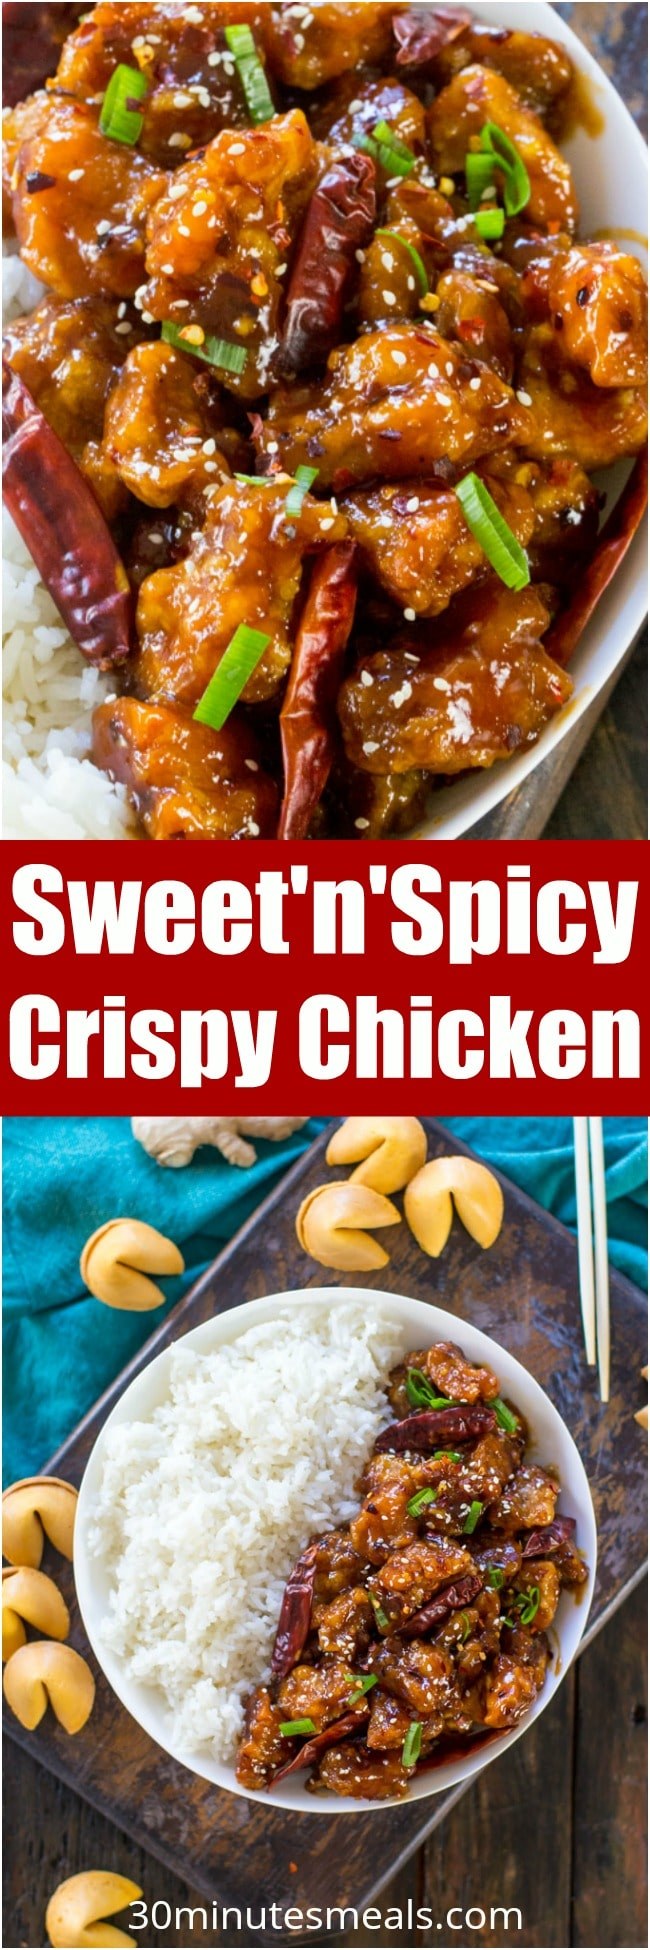 Sweet and Spicy Chicken is perfectly crispy and coated in the most delicious, sweet, sticky and spicy sauce. Make it in one pan in 30 mins only!